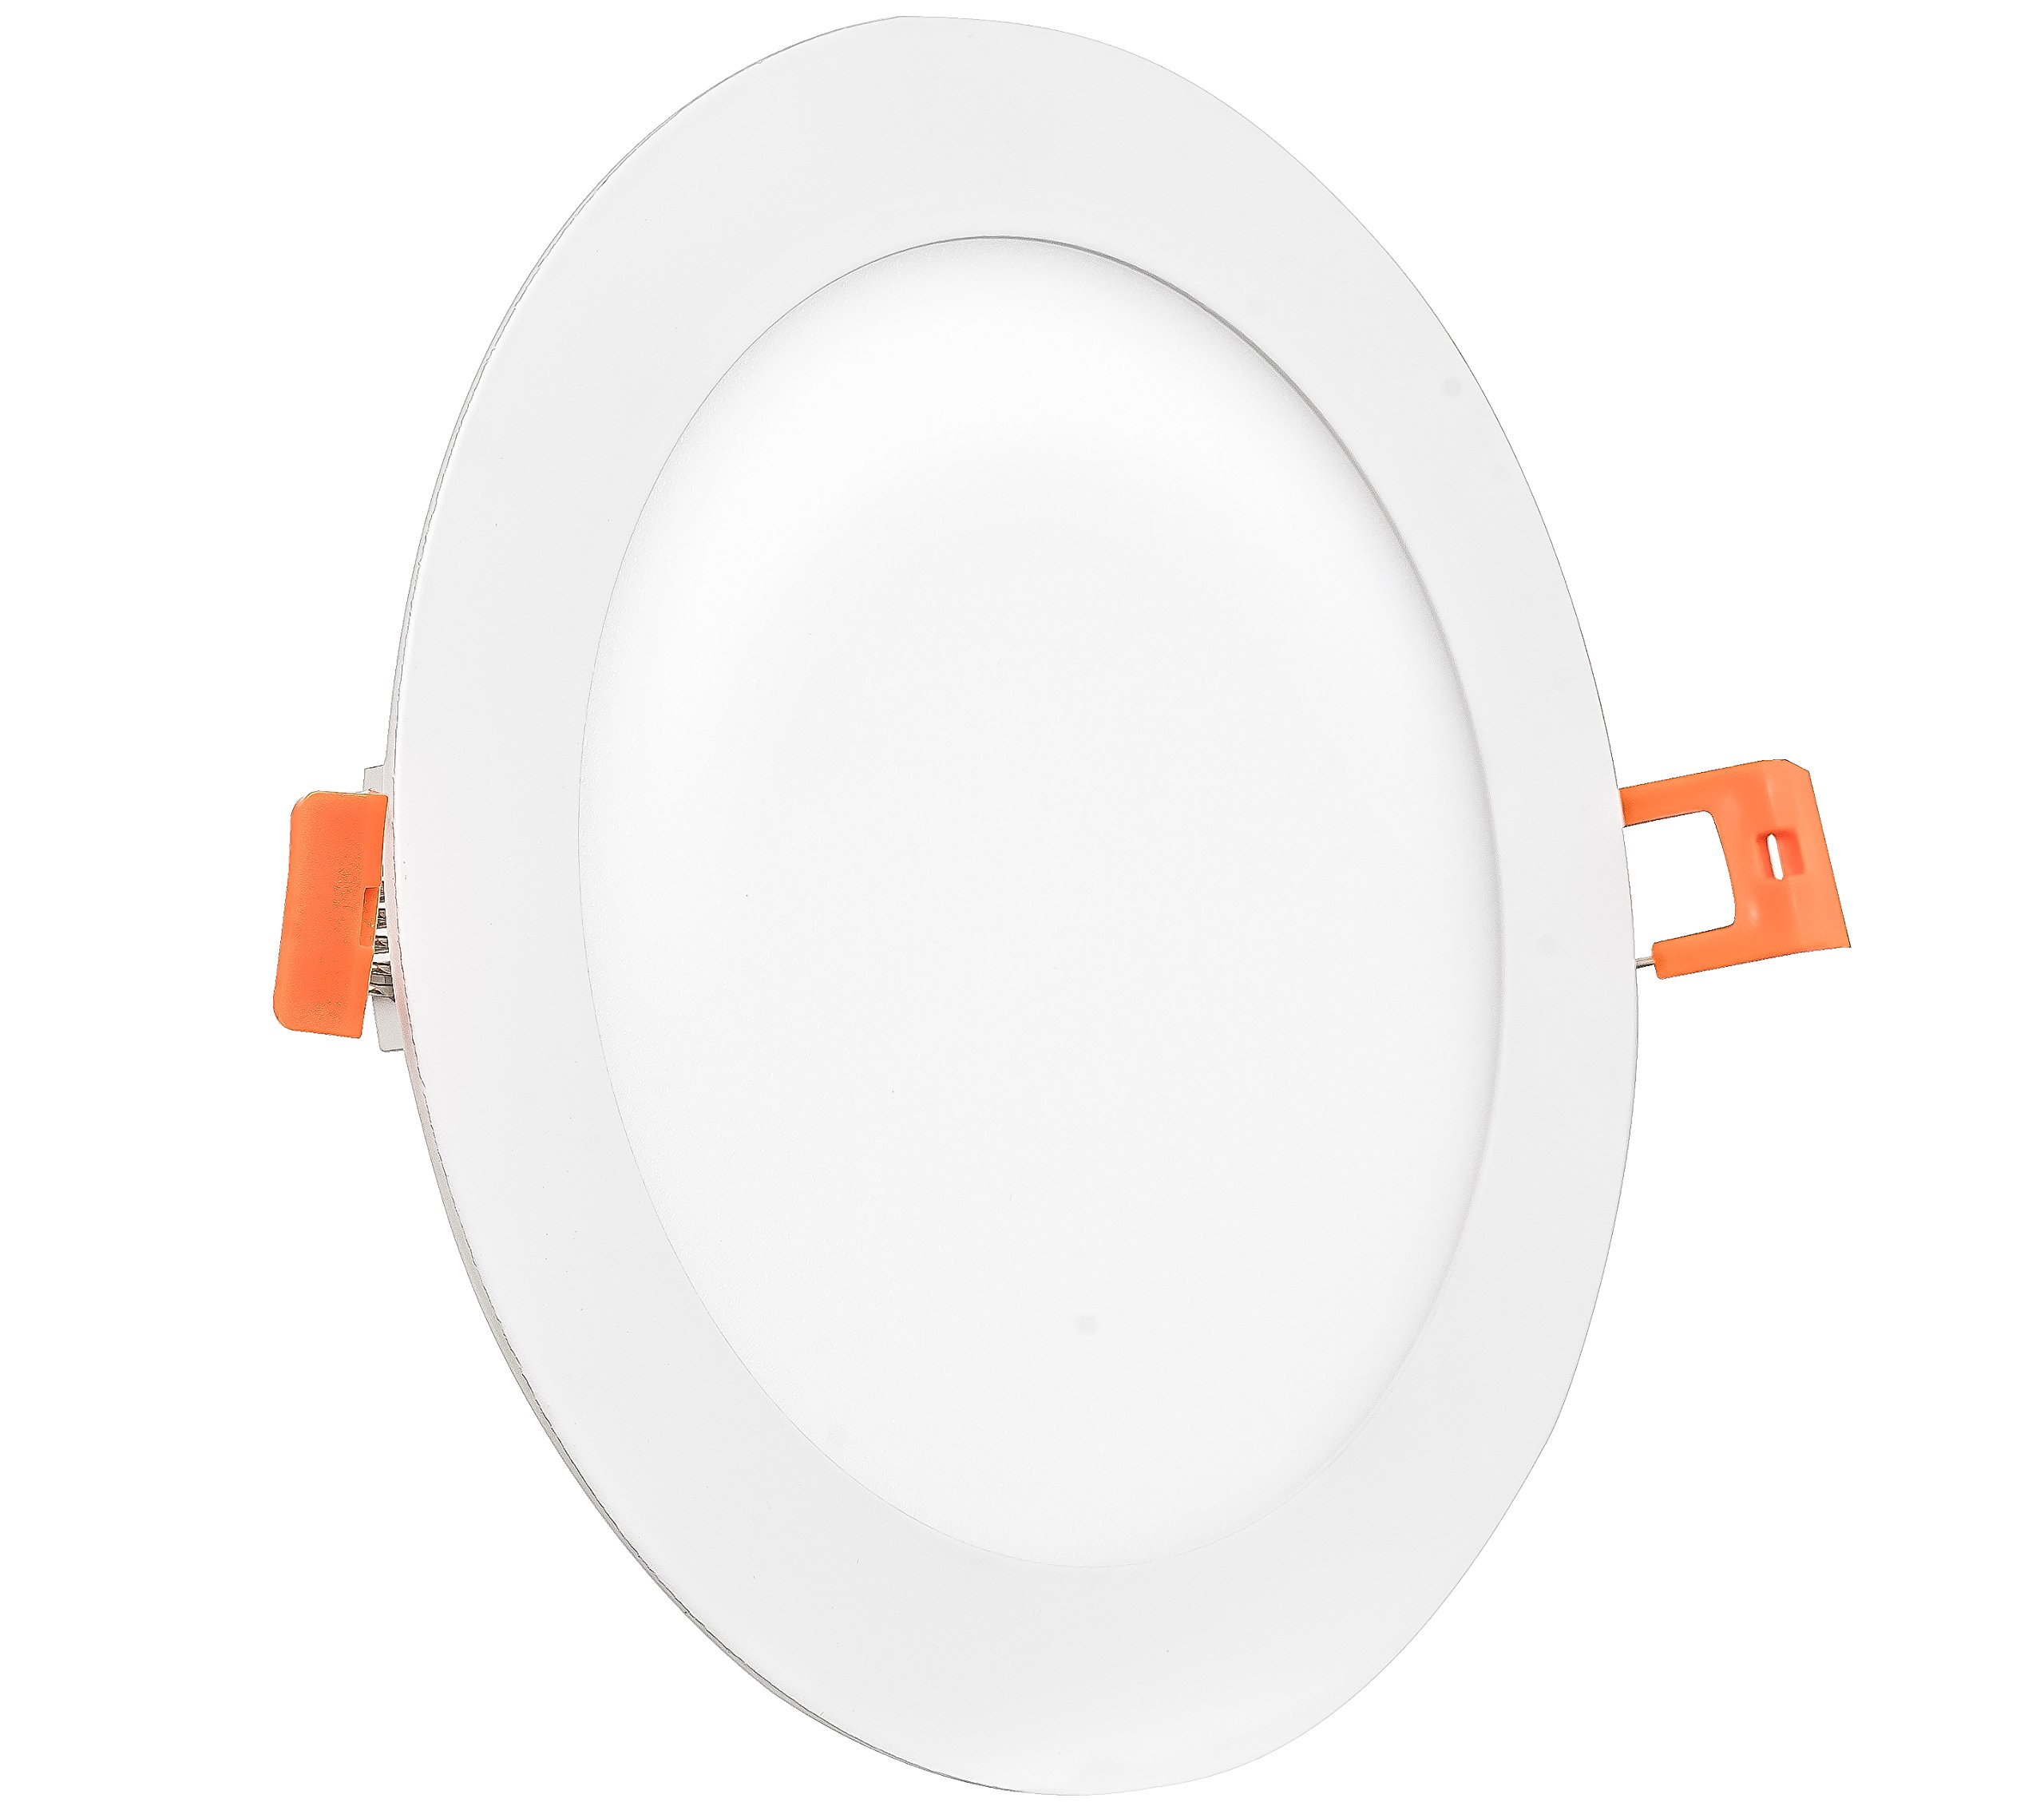 Westgate 18W 8 Inch Ultra Slim Recessed Light With Junction Box Included - Dimmable - No Housing Required - 120V- Damp Location Rated - Energy Star - 5 Year Warranty(1, 4000K Natural White)